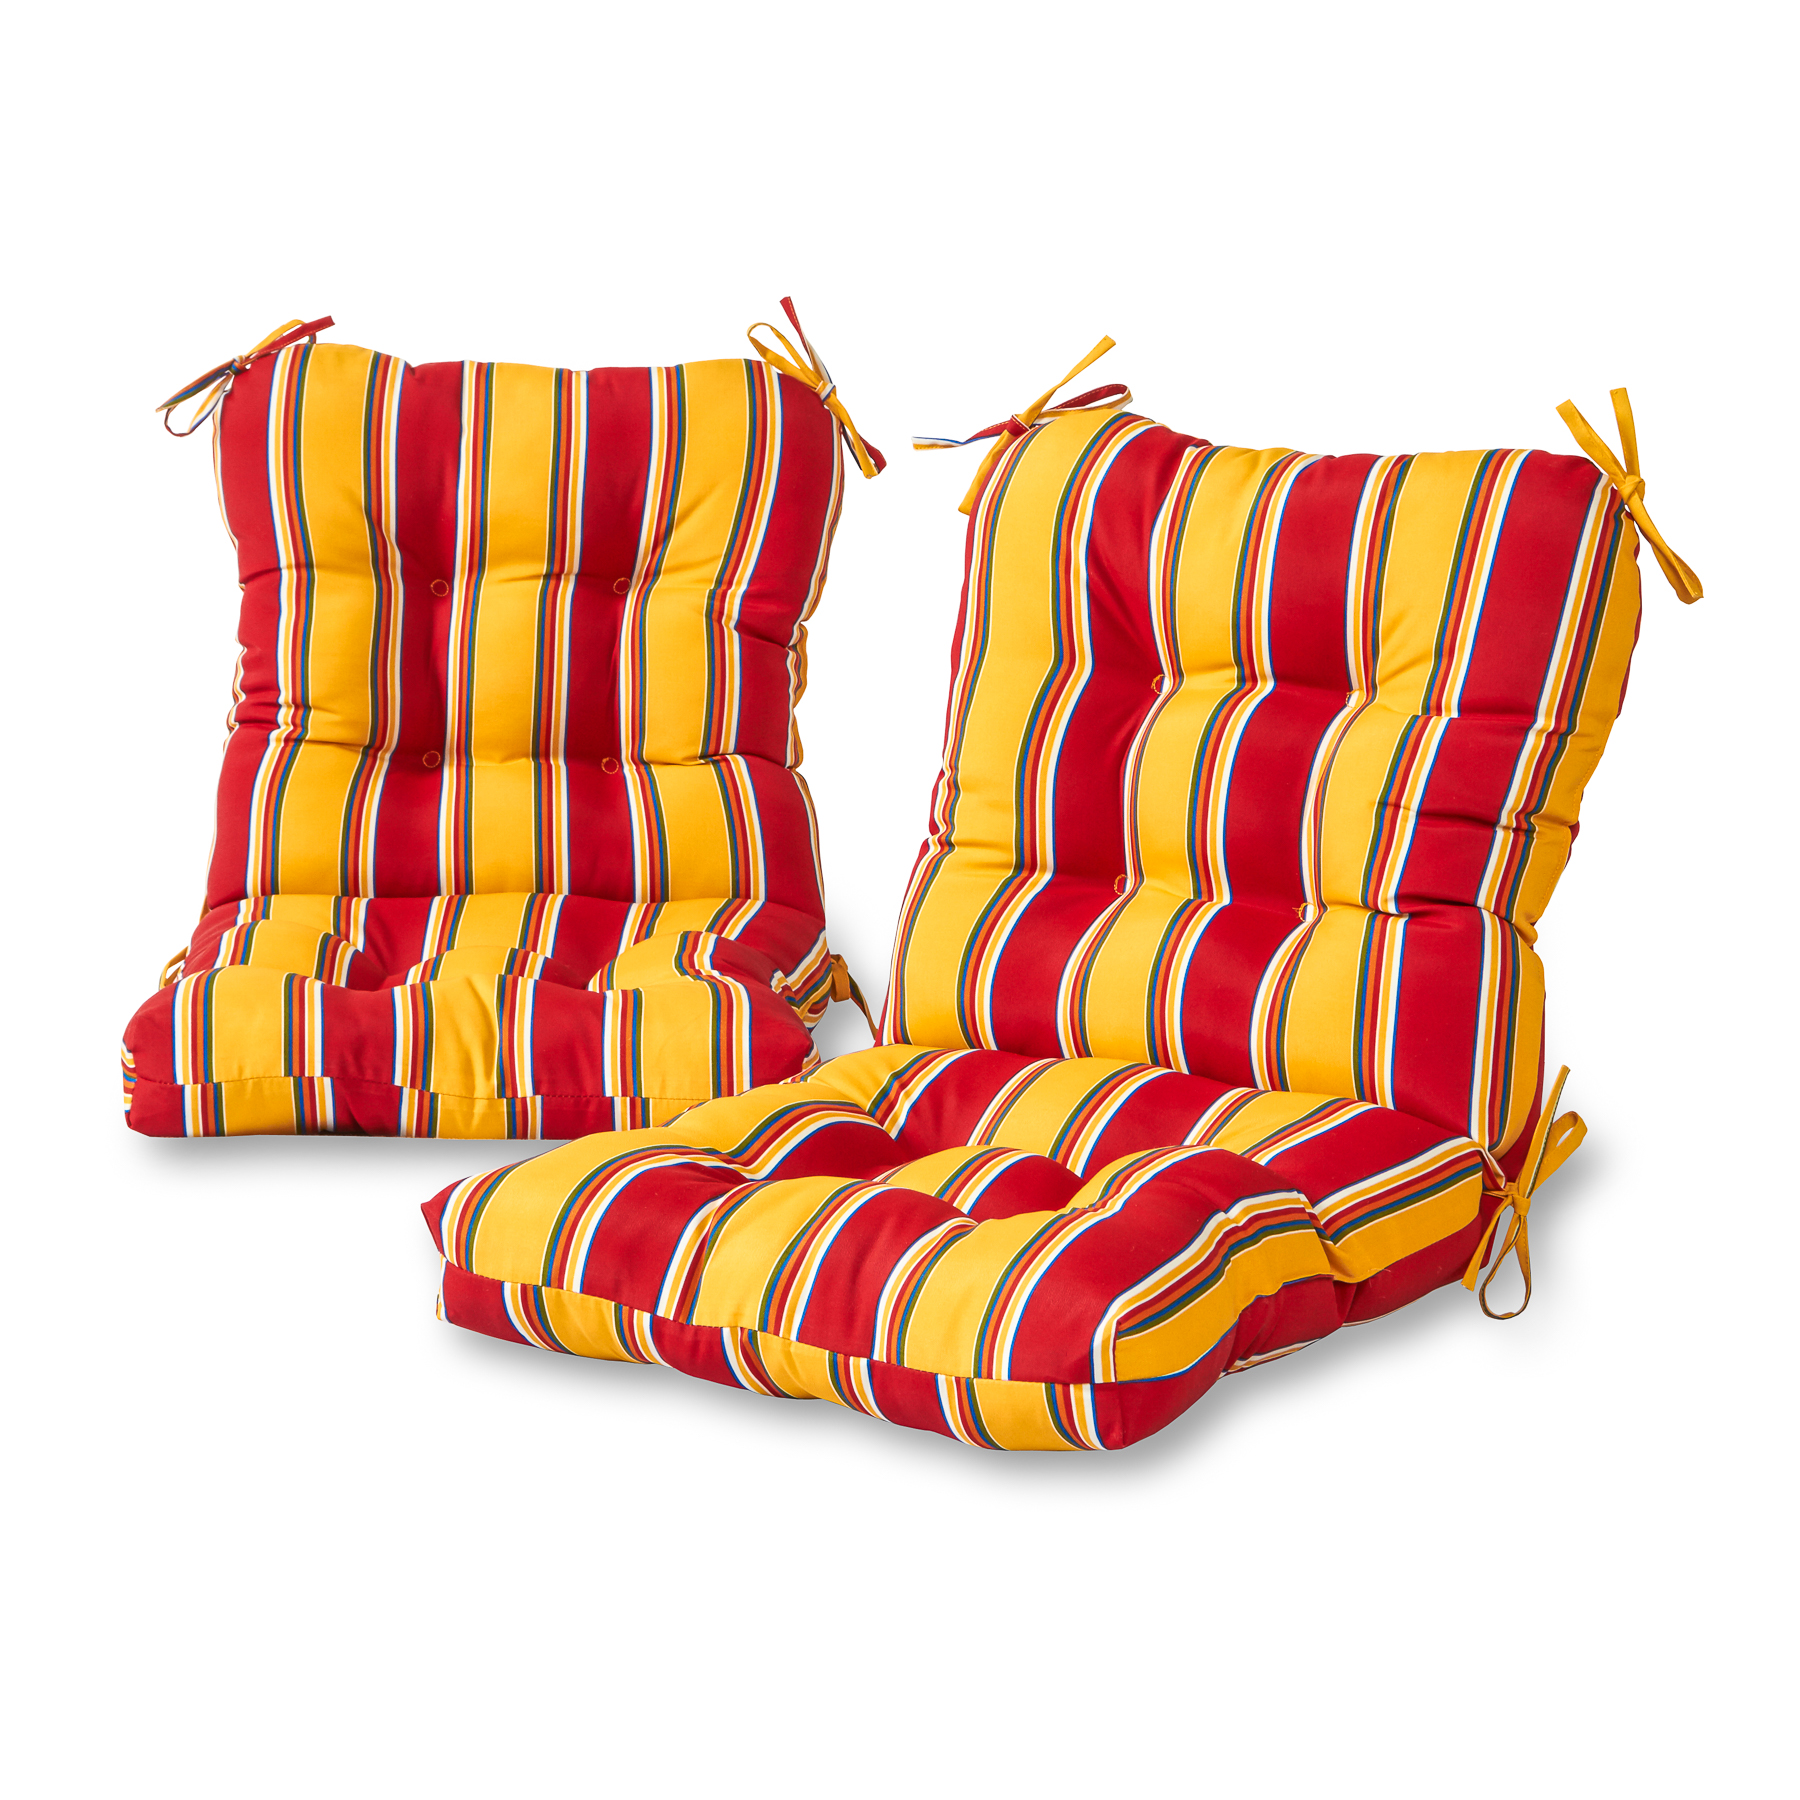 Greendale Home Fashions Carnival Outdoor Chair Cushion, Set of 2 by Greendale Home Fashions